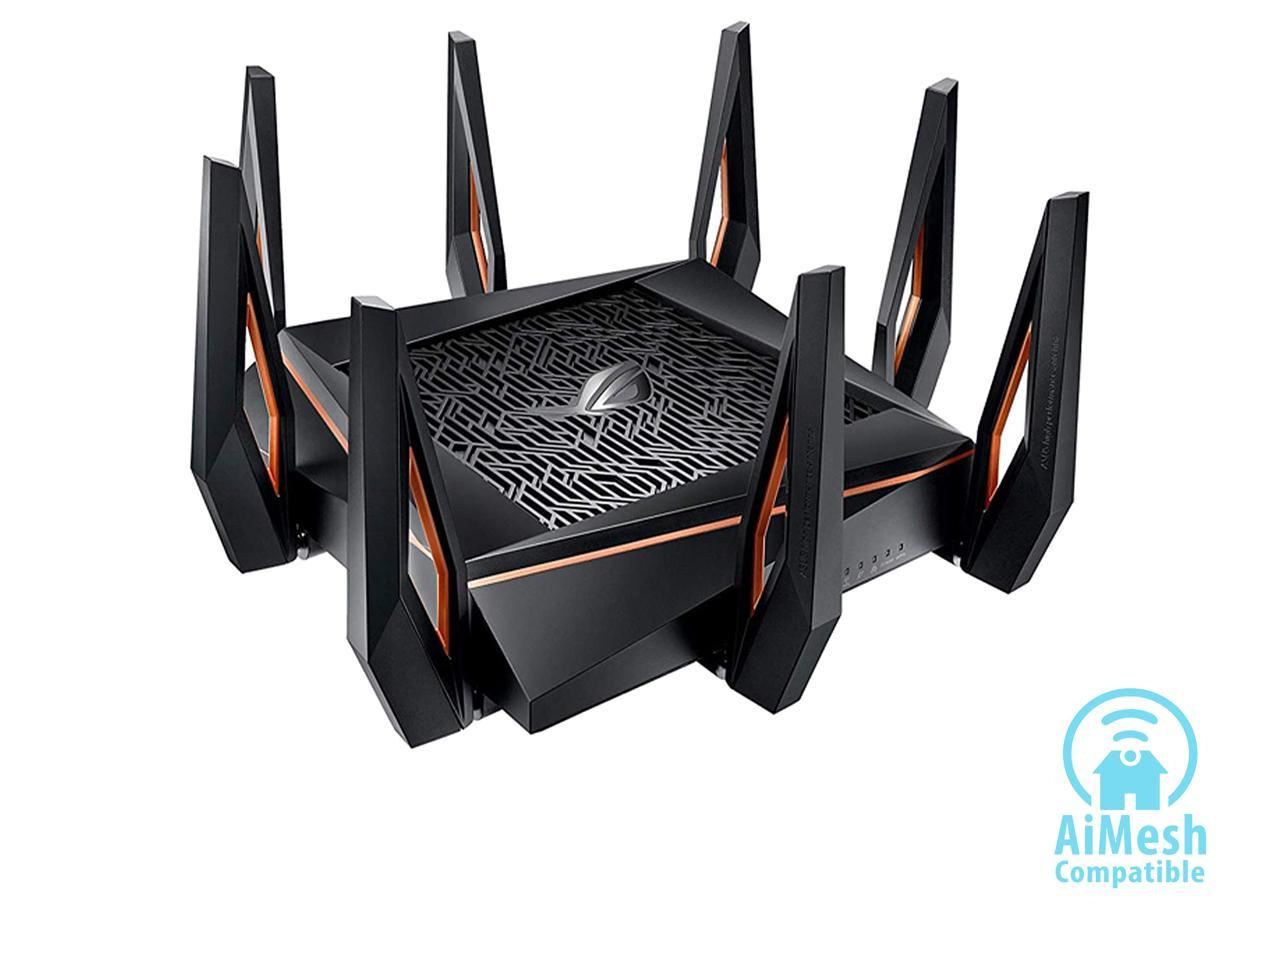 ASUS ROG Rapture GT-AX11000 AX11000 Tri-band 10 Gigabit Wi-Fi Gaming Router